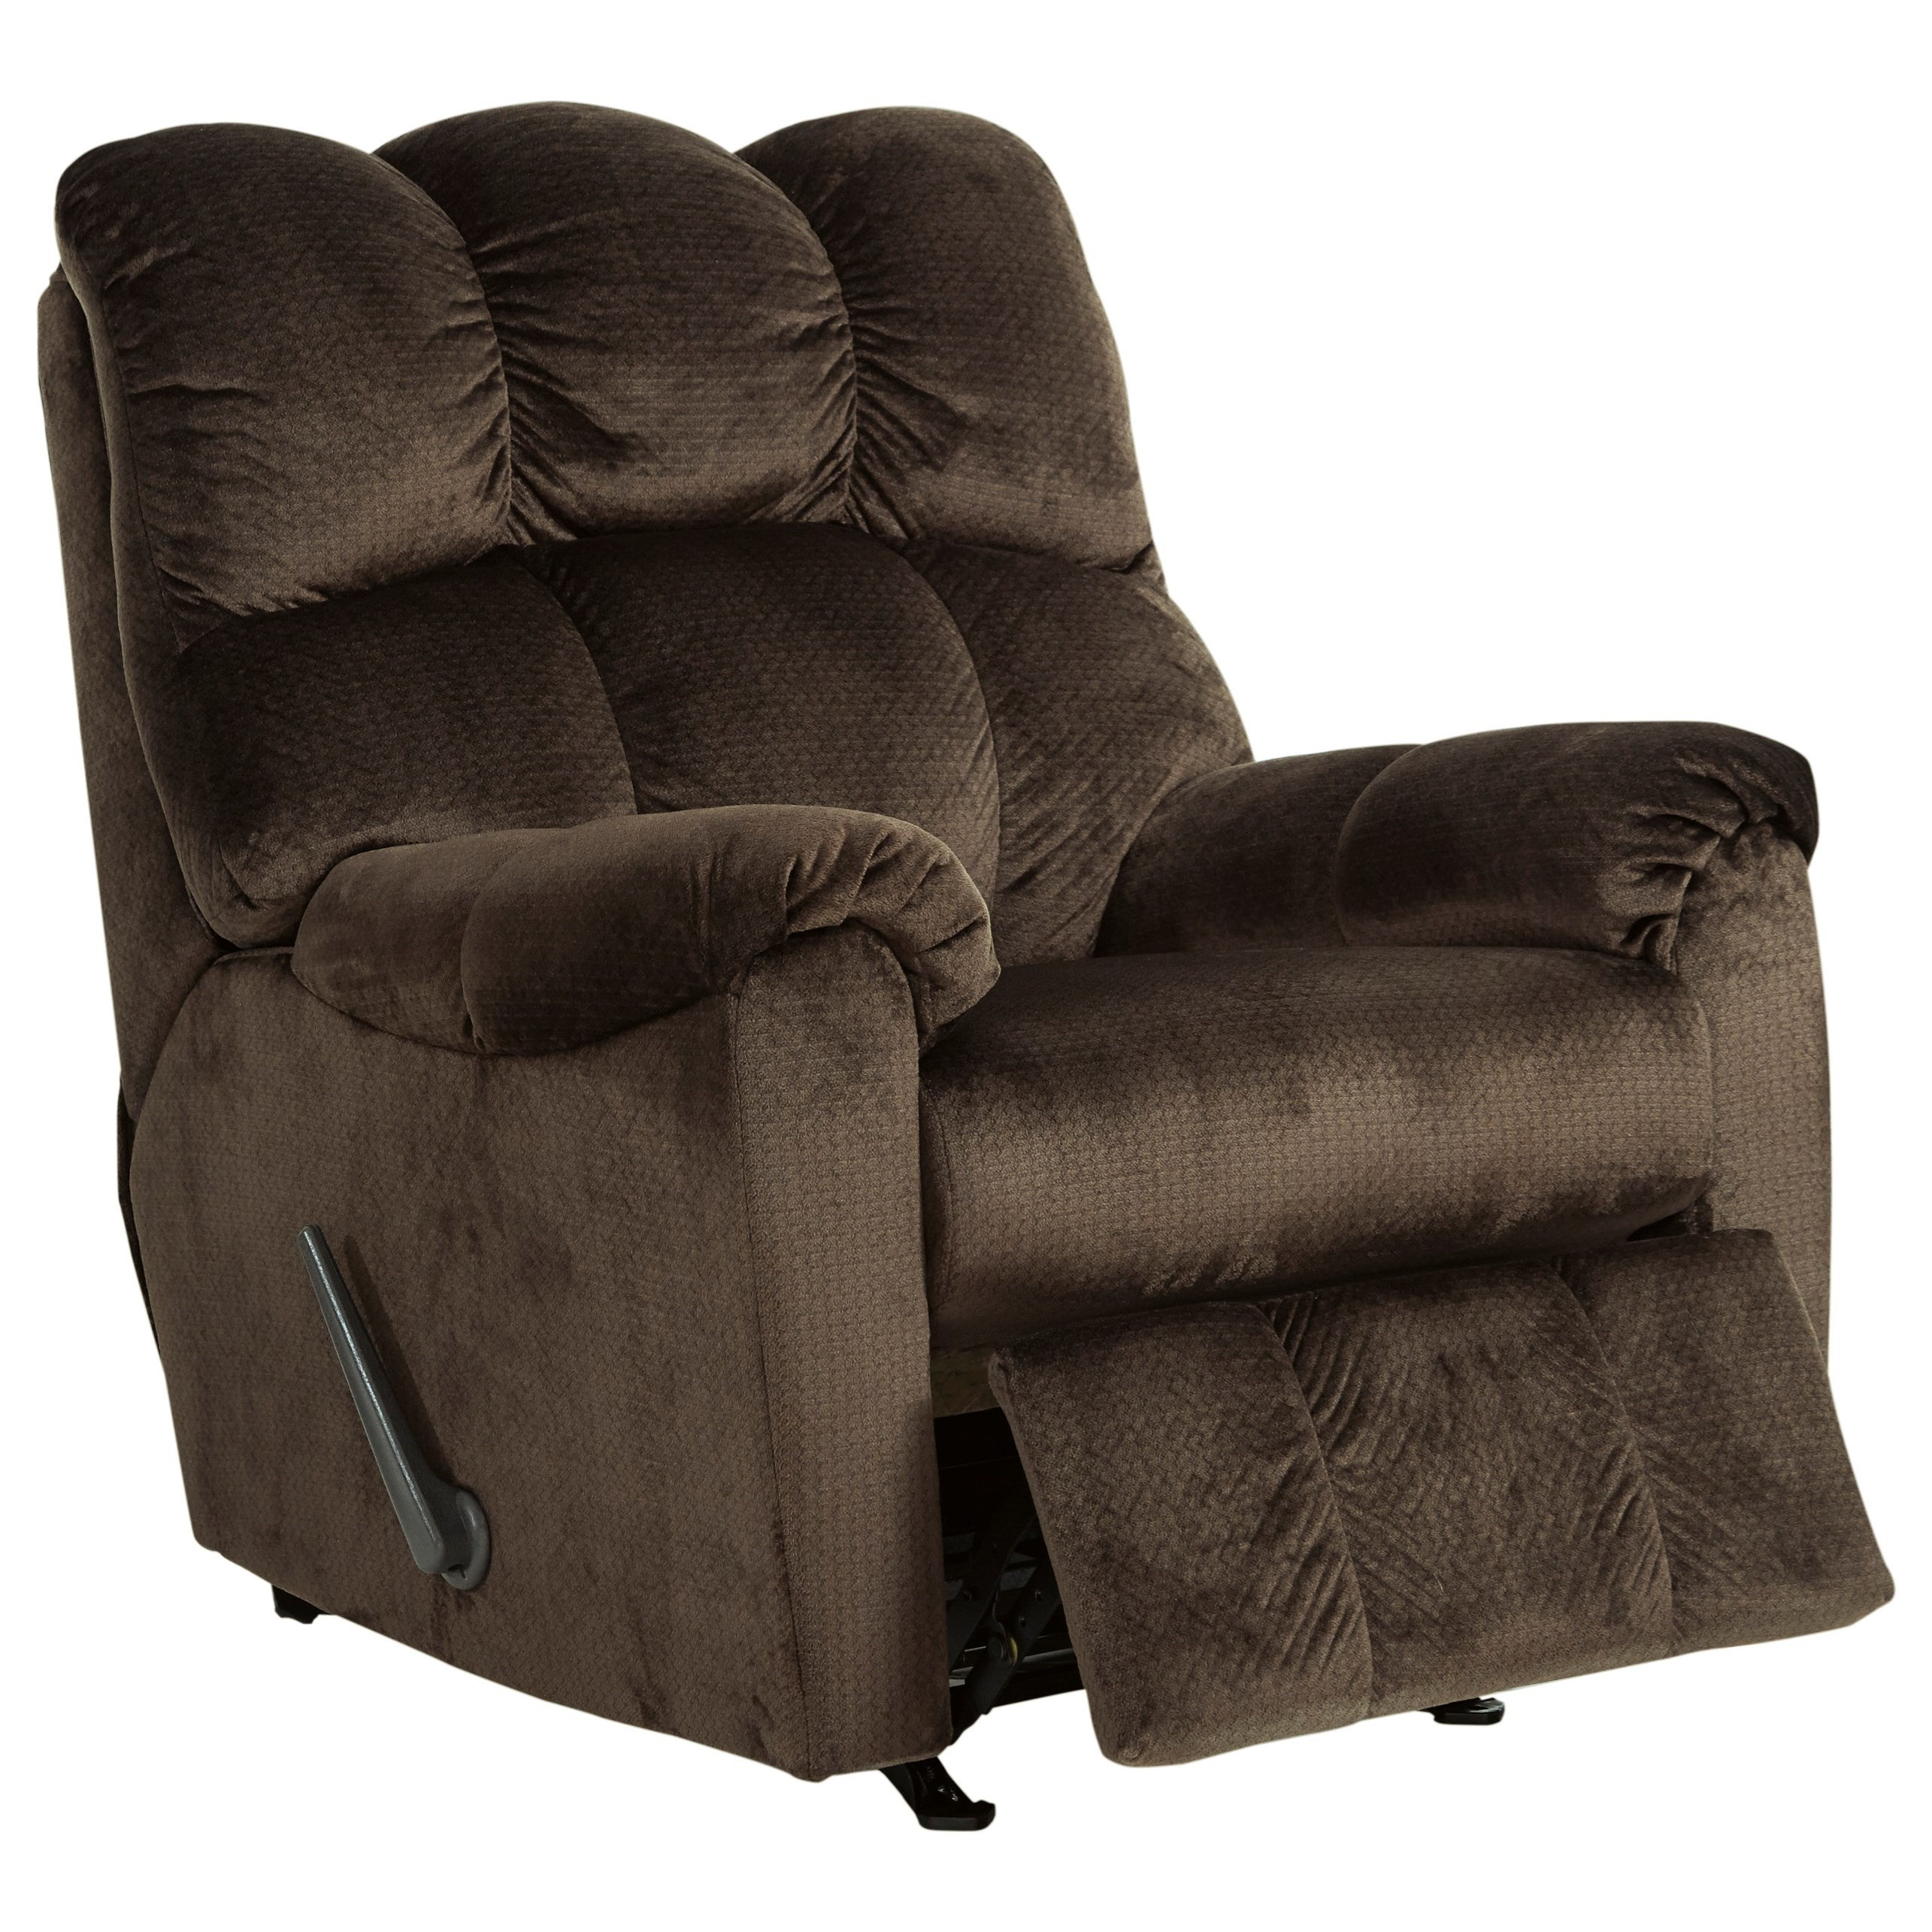 Foxfield Rocker Recliner by Signature Design by Ashley at Household Furniture